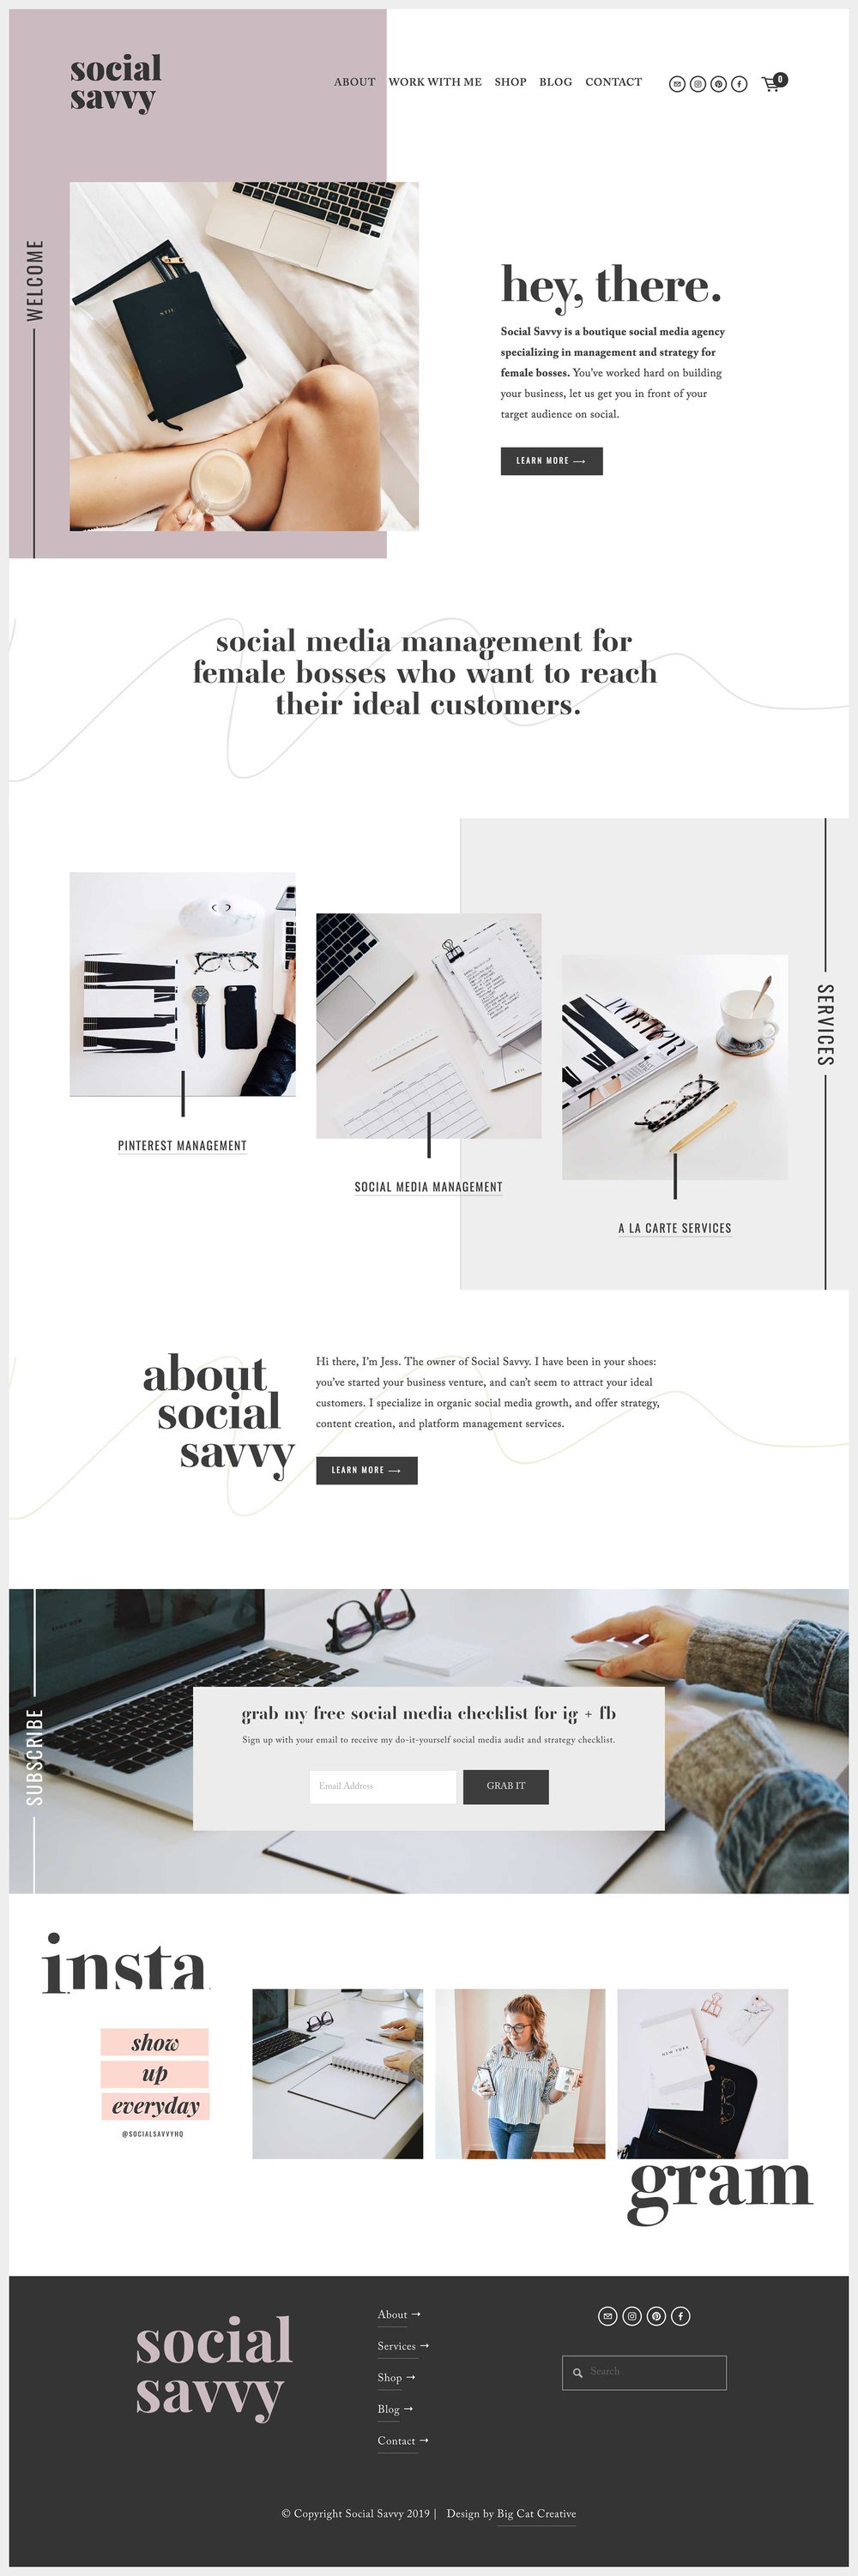 Squarespace Template Design by Big Cat Creative - Unearth Template Showcase - Social Savvy Hq